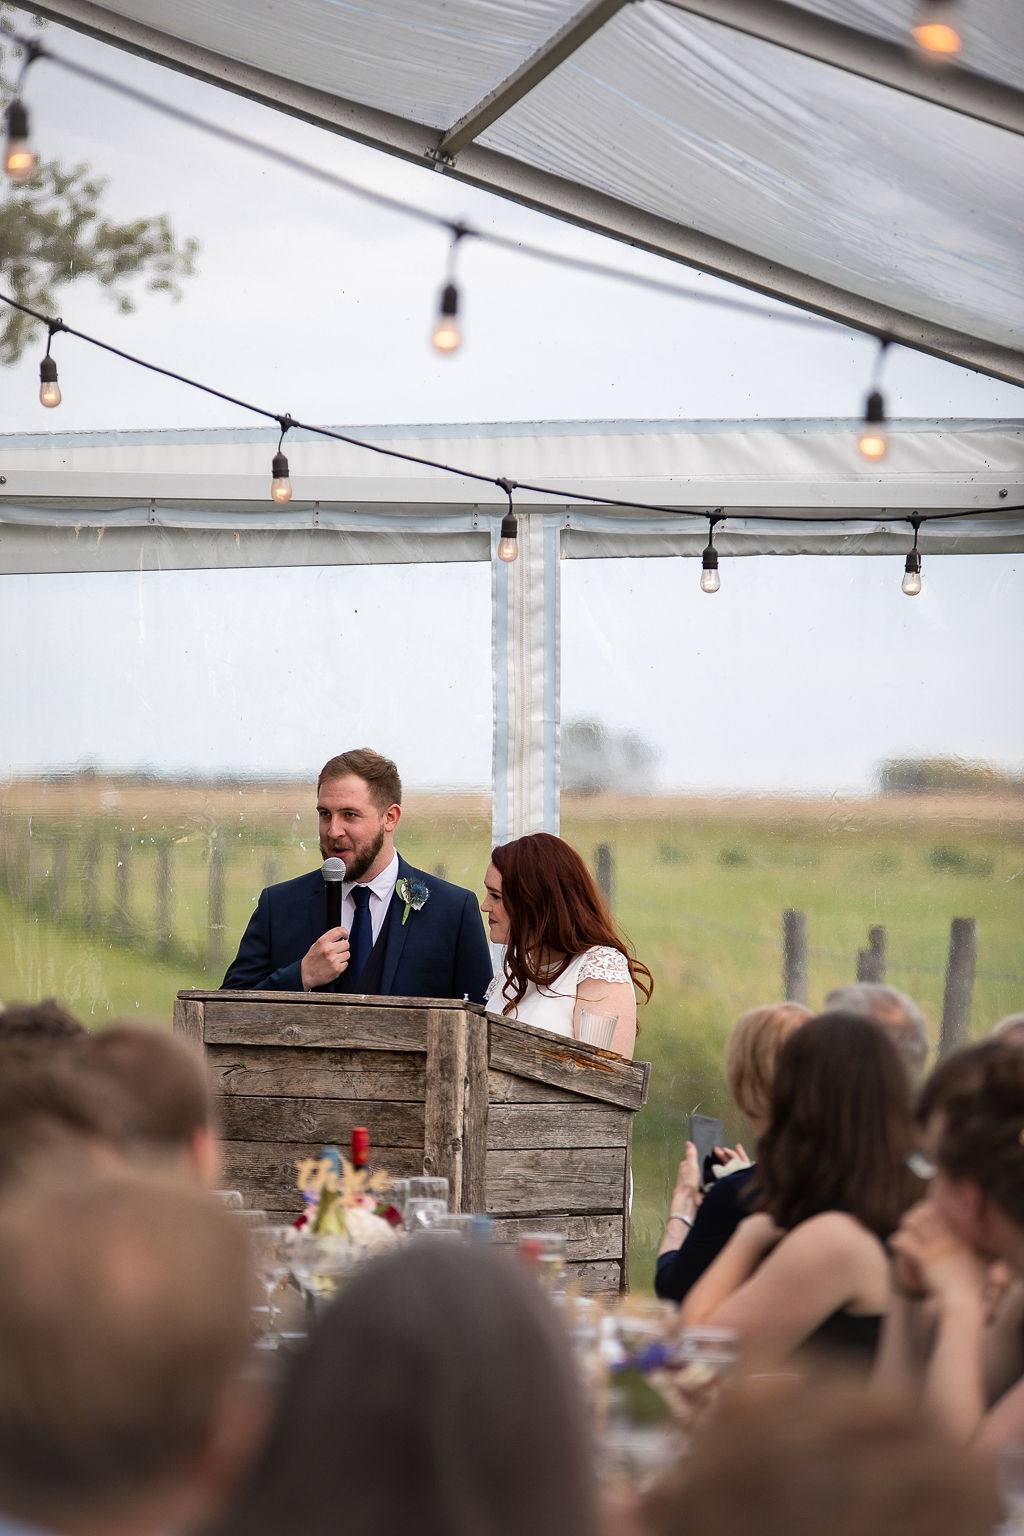 a bride and groom give a speech at their clear tent venue at the Gathered in Calgary, Alberta. www.thegathered.ca